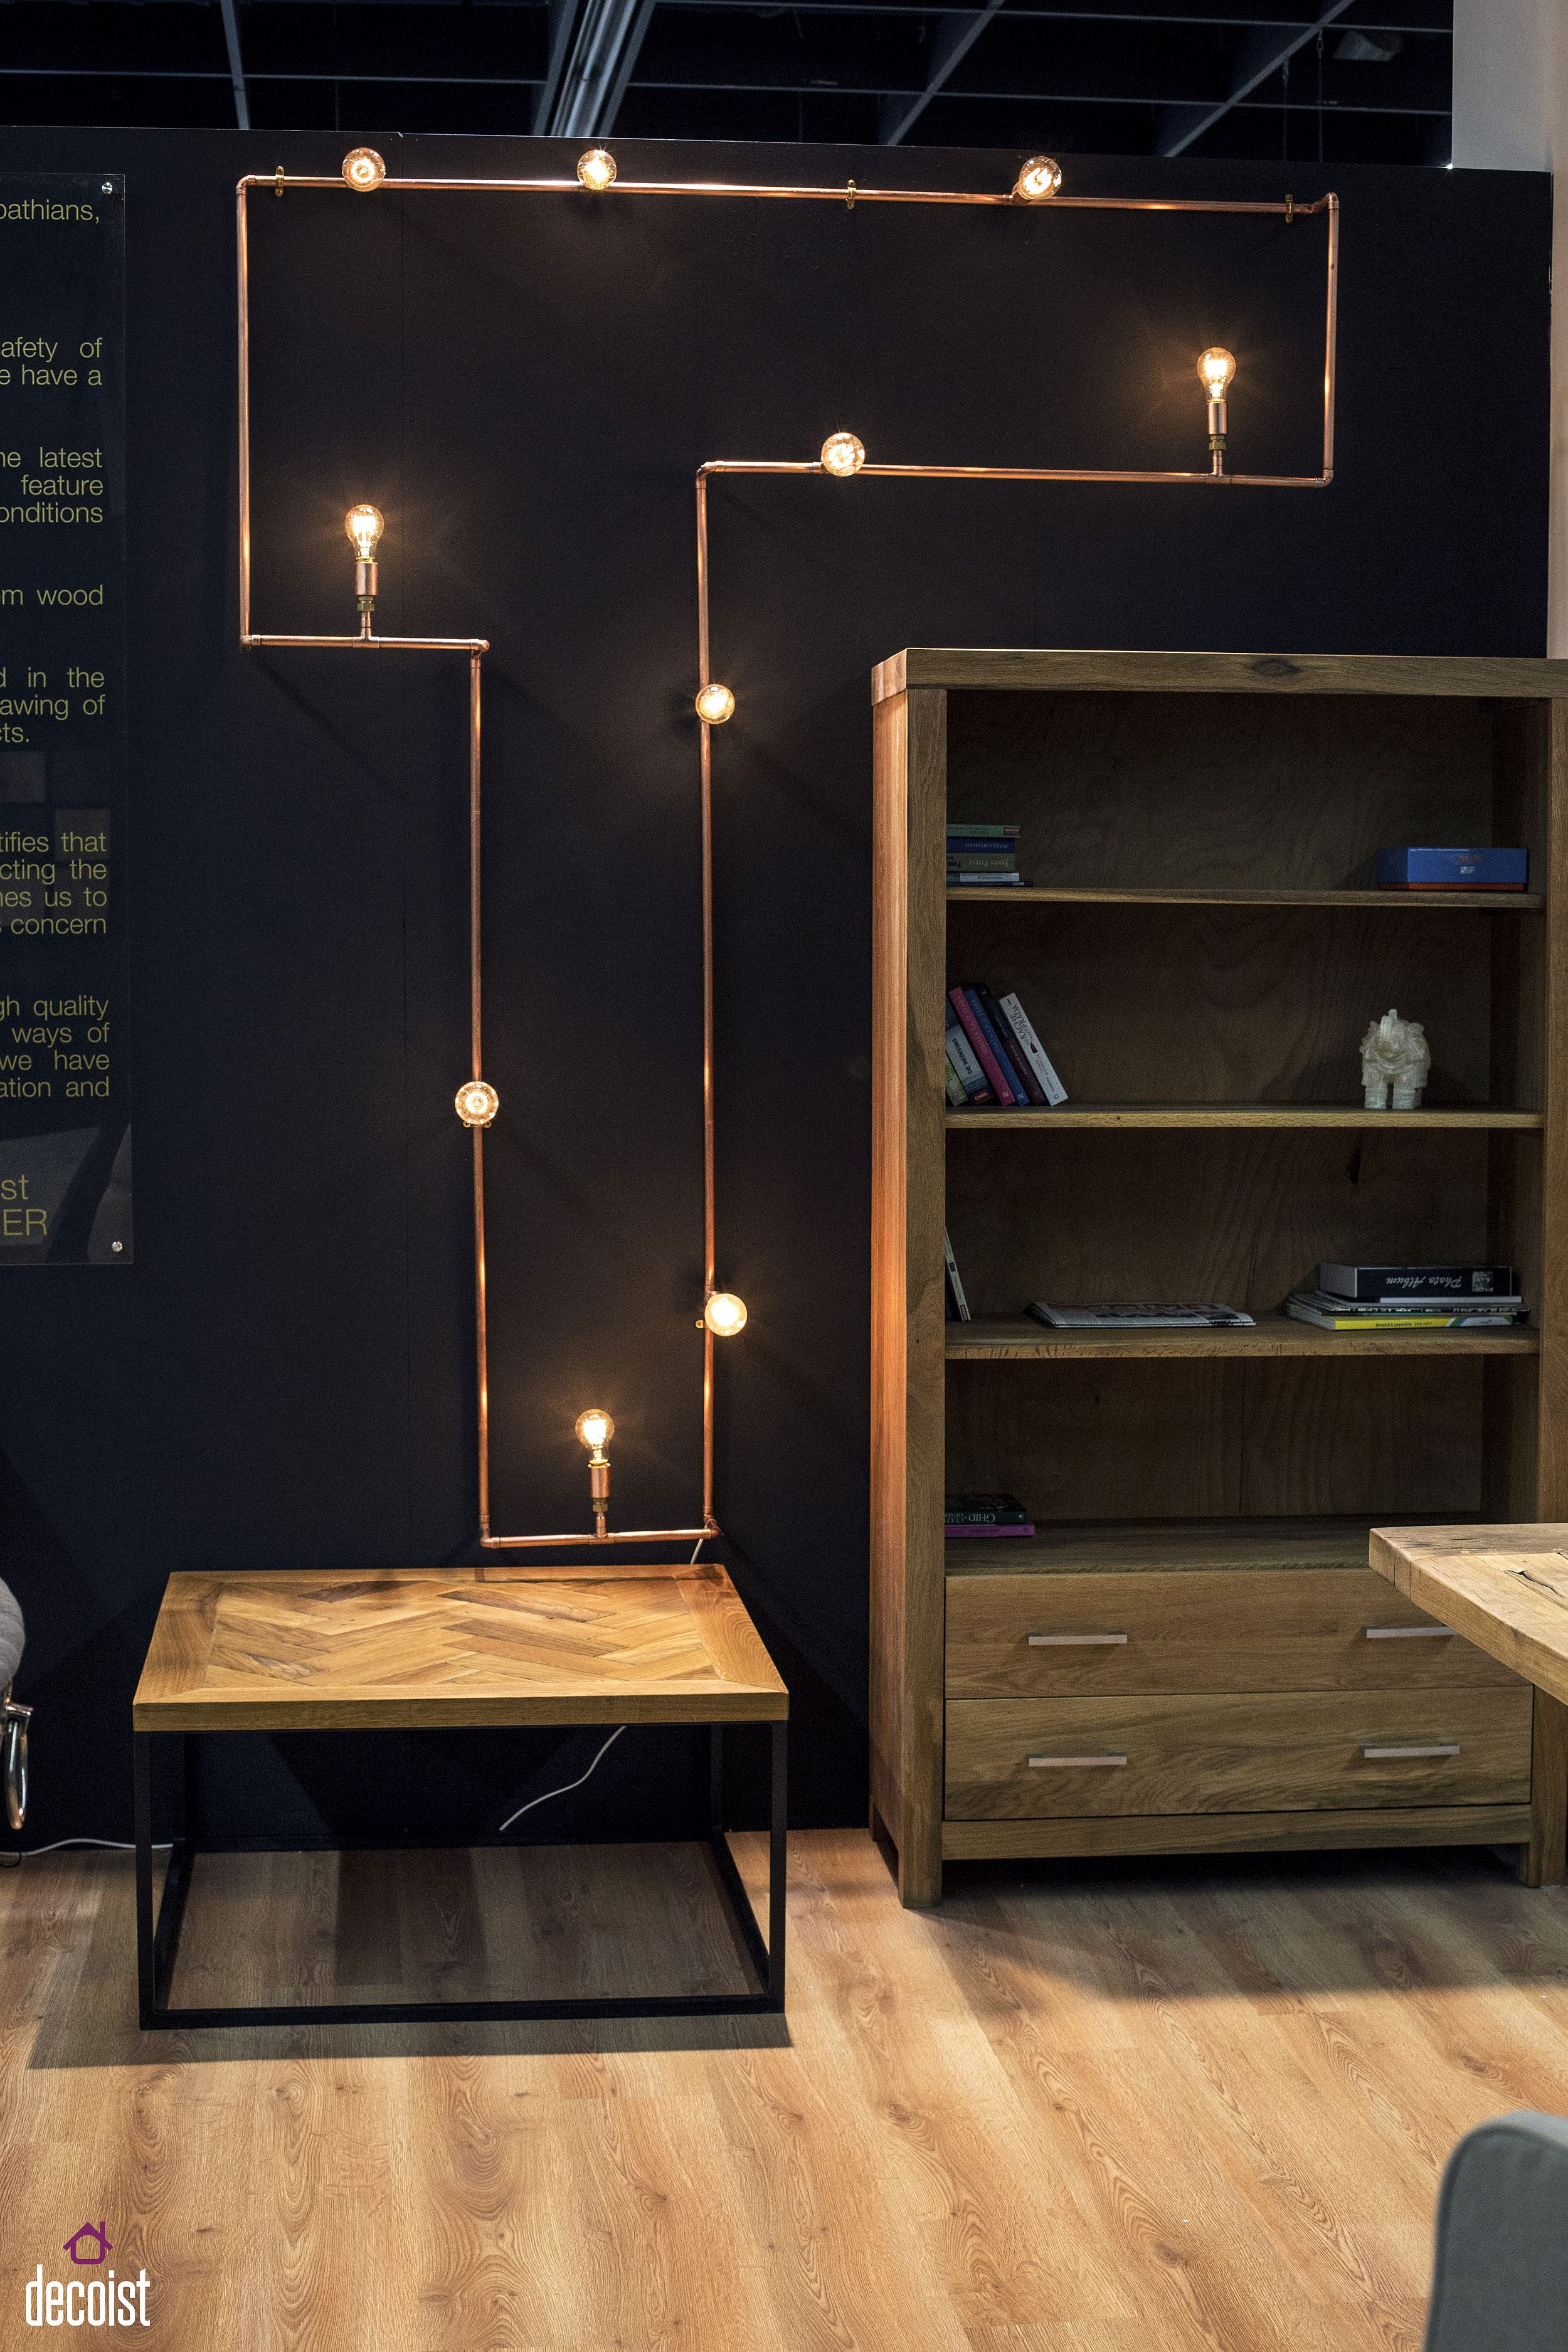 Get innovative with yiour lighting fixtures using copper pipes and Edison bulbs!